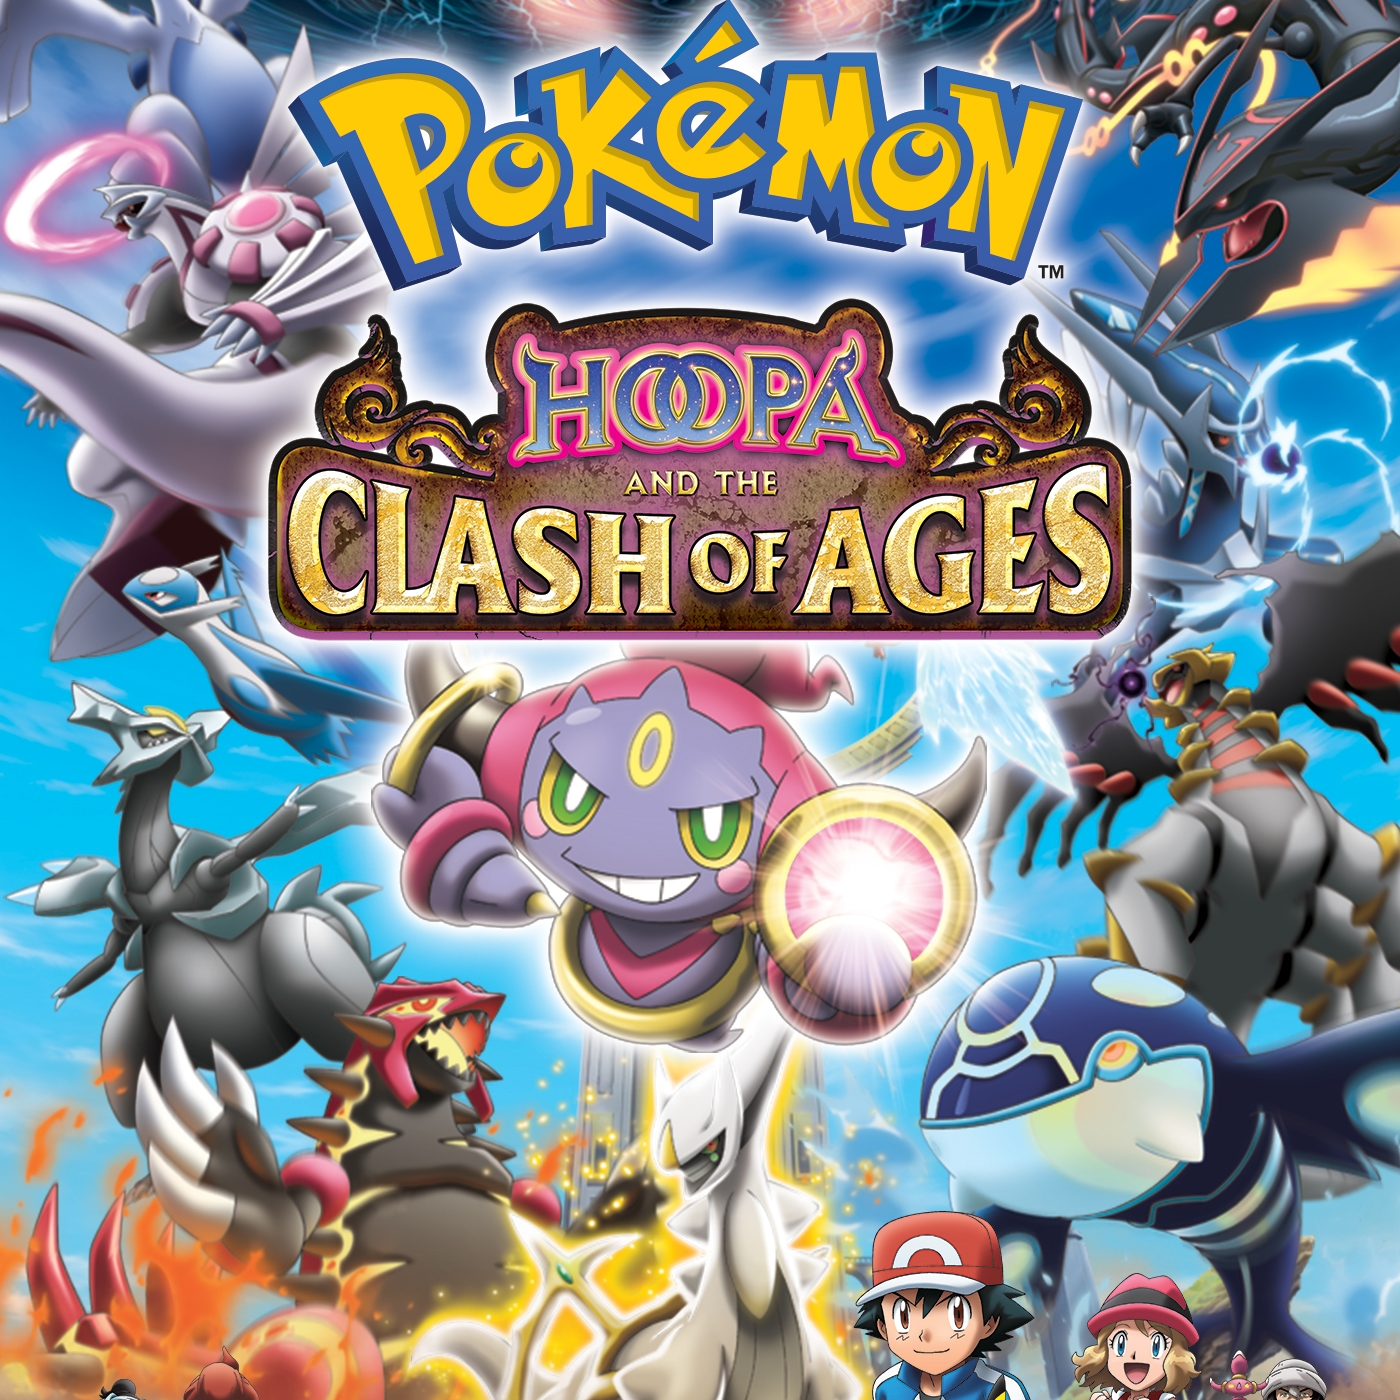 Pokemon The Movie Hoopa And The Clash Of Ages Now In Itunes It S Super Effective A Weekly Pokemon Podcast